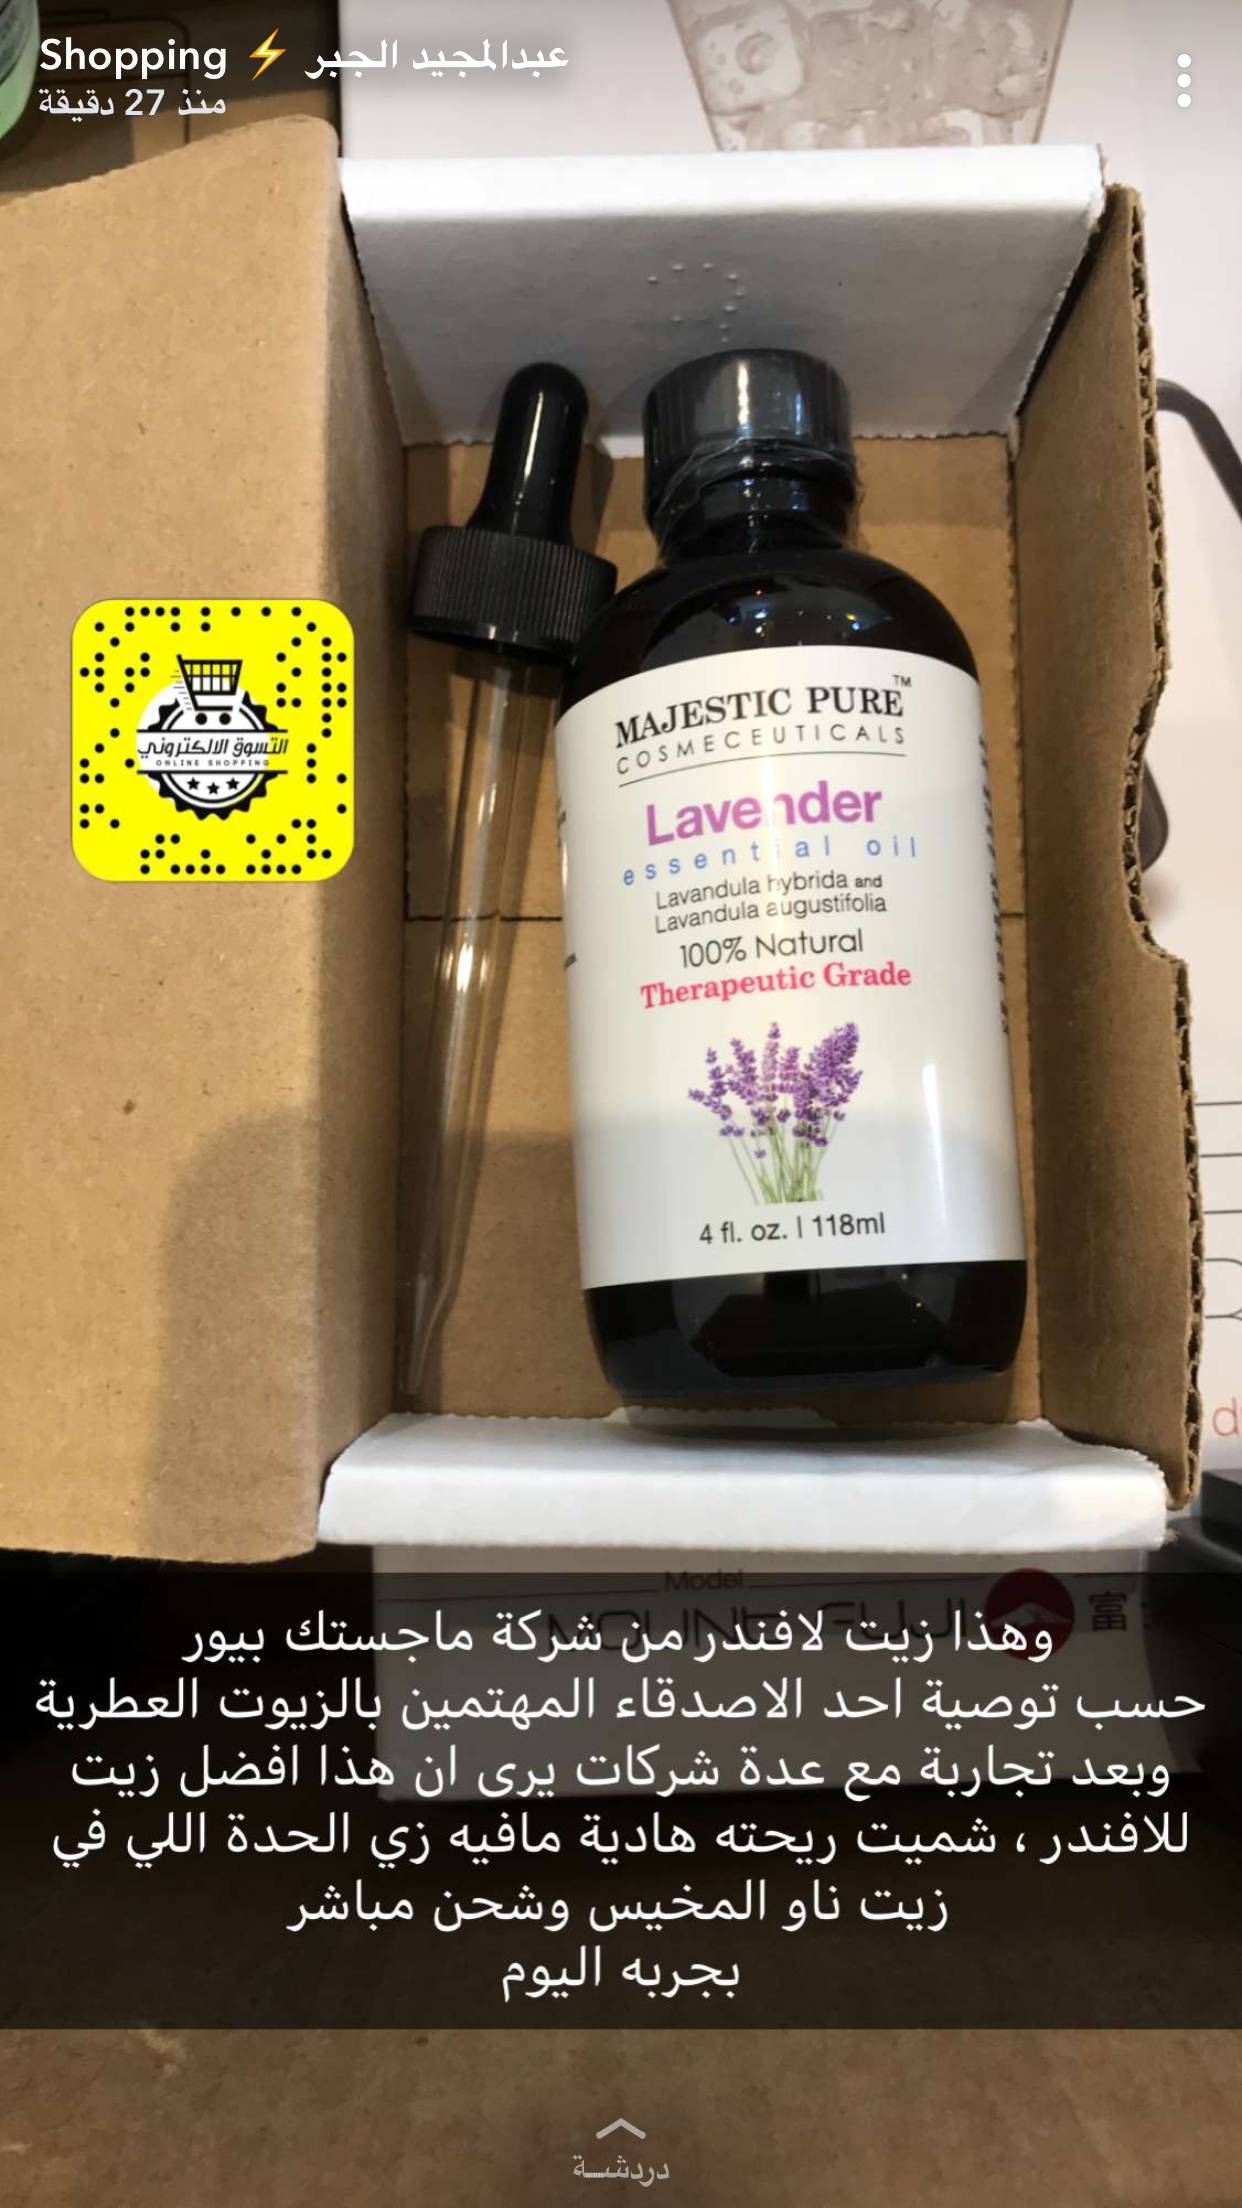 Pin By Arwa On مواقع Essential Oil Blends Beauty Care Skin Care